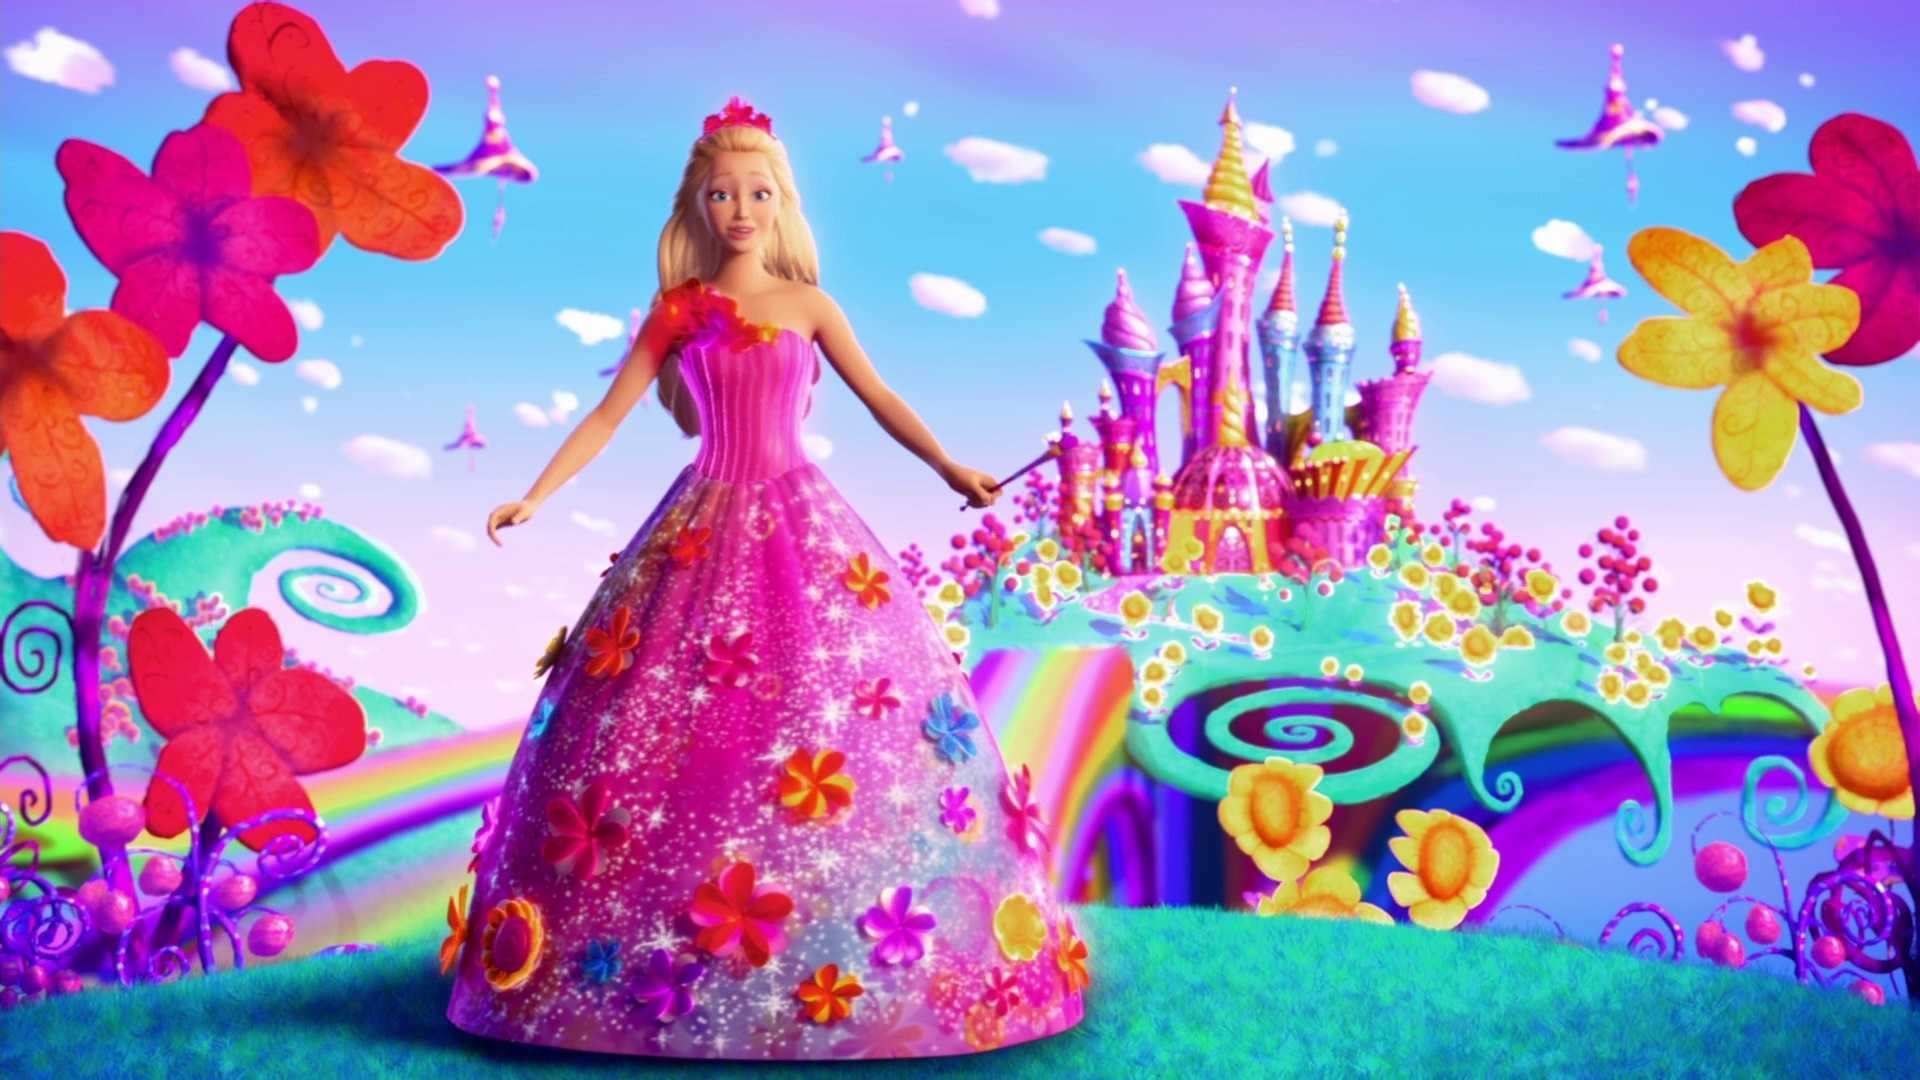 Barbie clipart background Wallpaper Wwejohncena Wallpapers 2015new Barbie